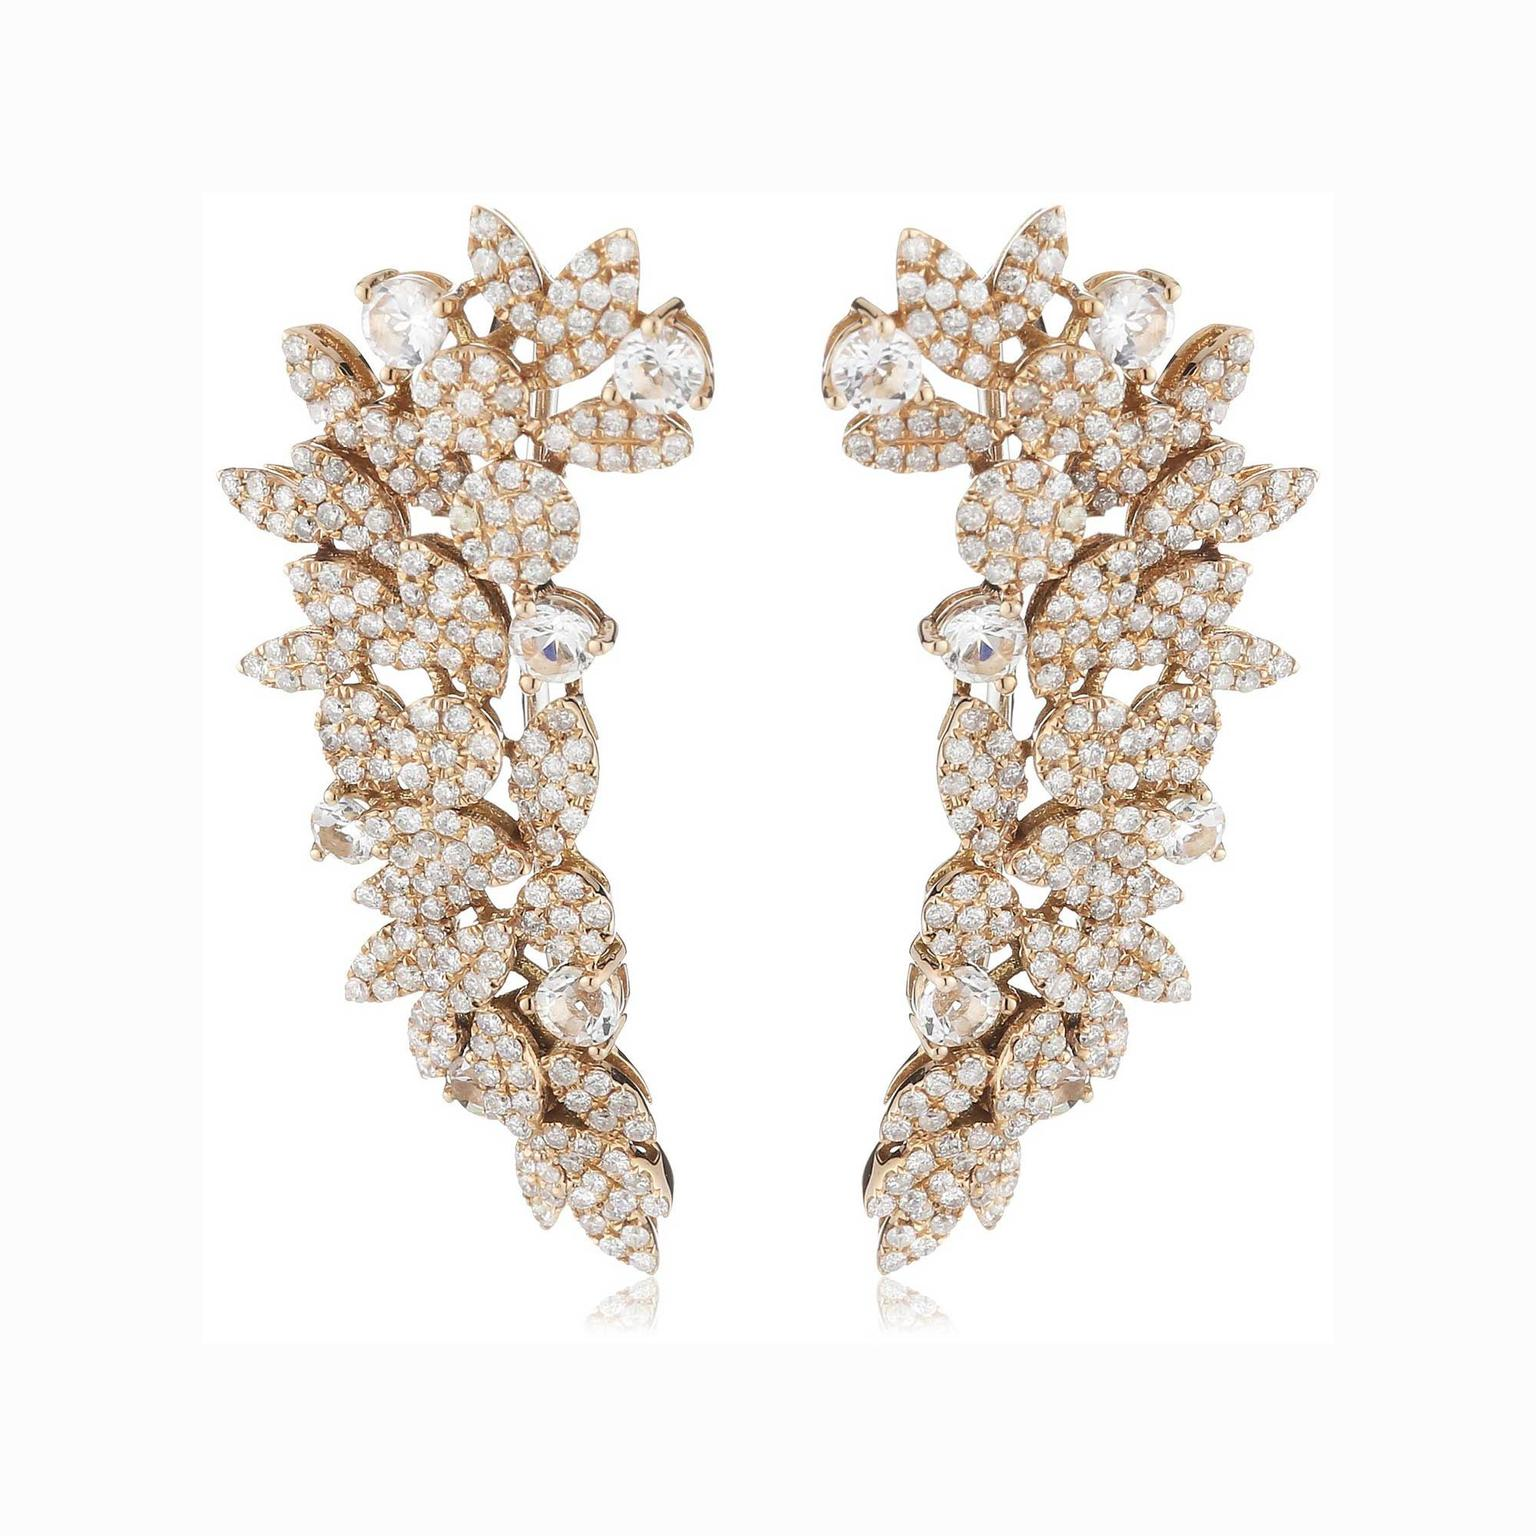 AS29 diamond ear cuffs